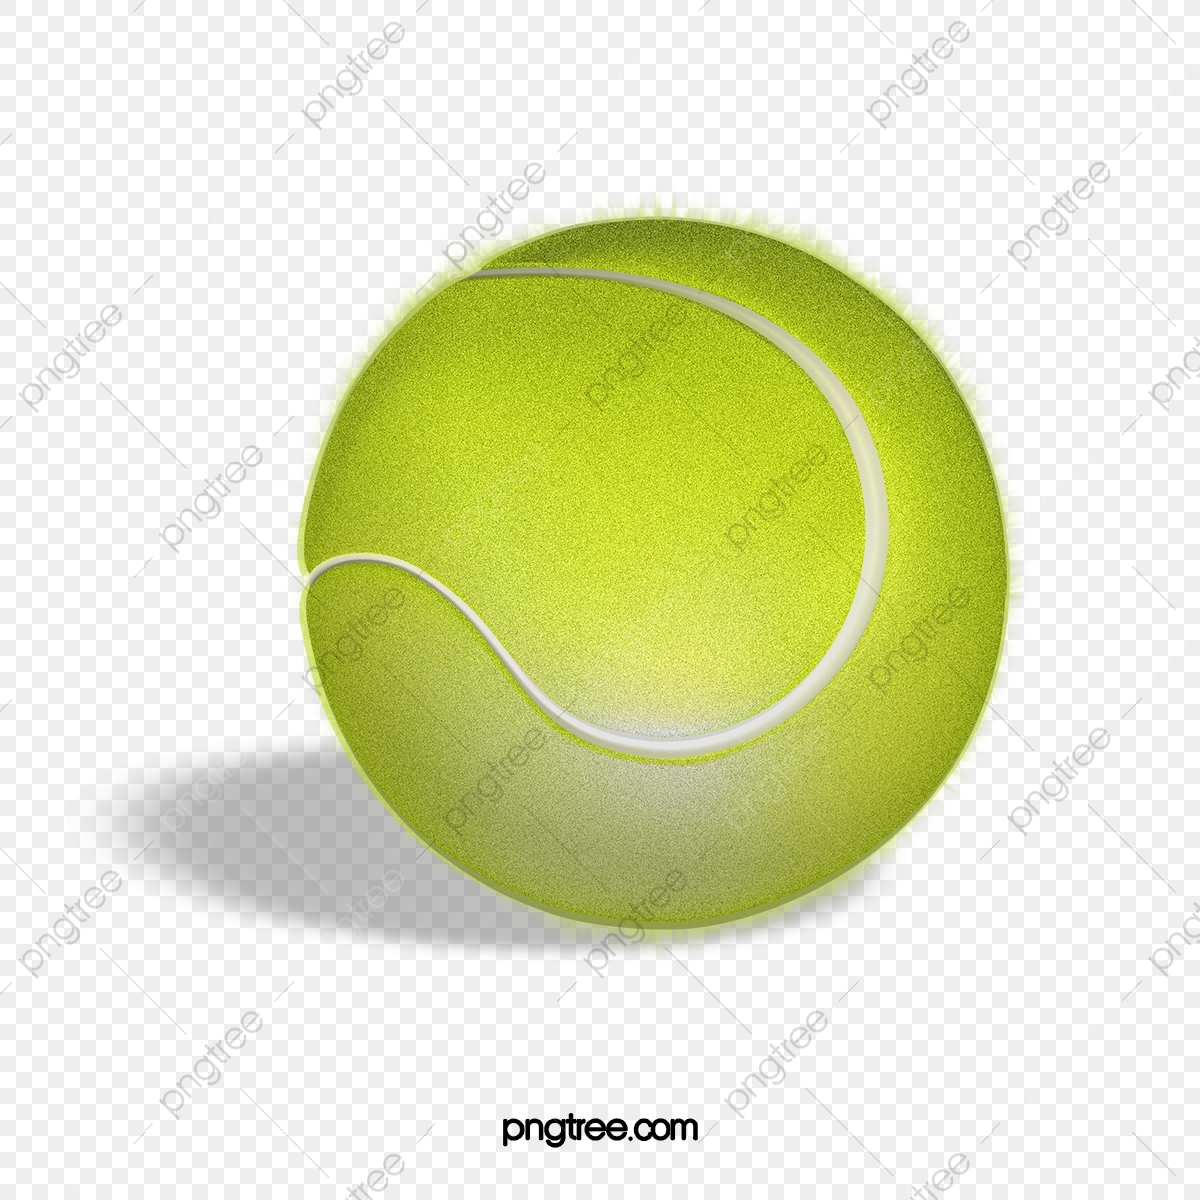 hight resolution of commercial use resource upgrade to premium plan and get license authorization upgradenow yellow tennis tennis clipart